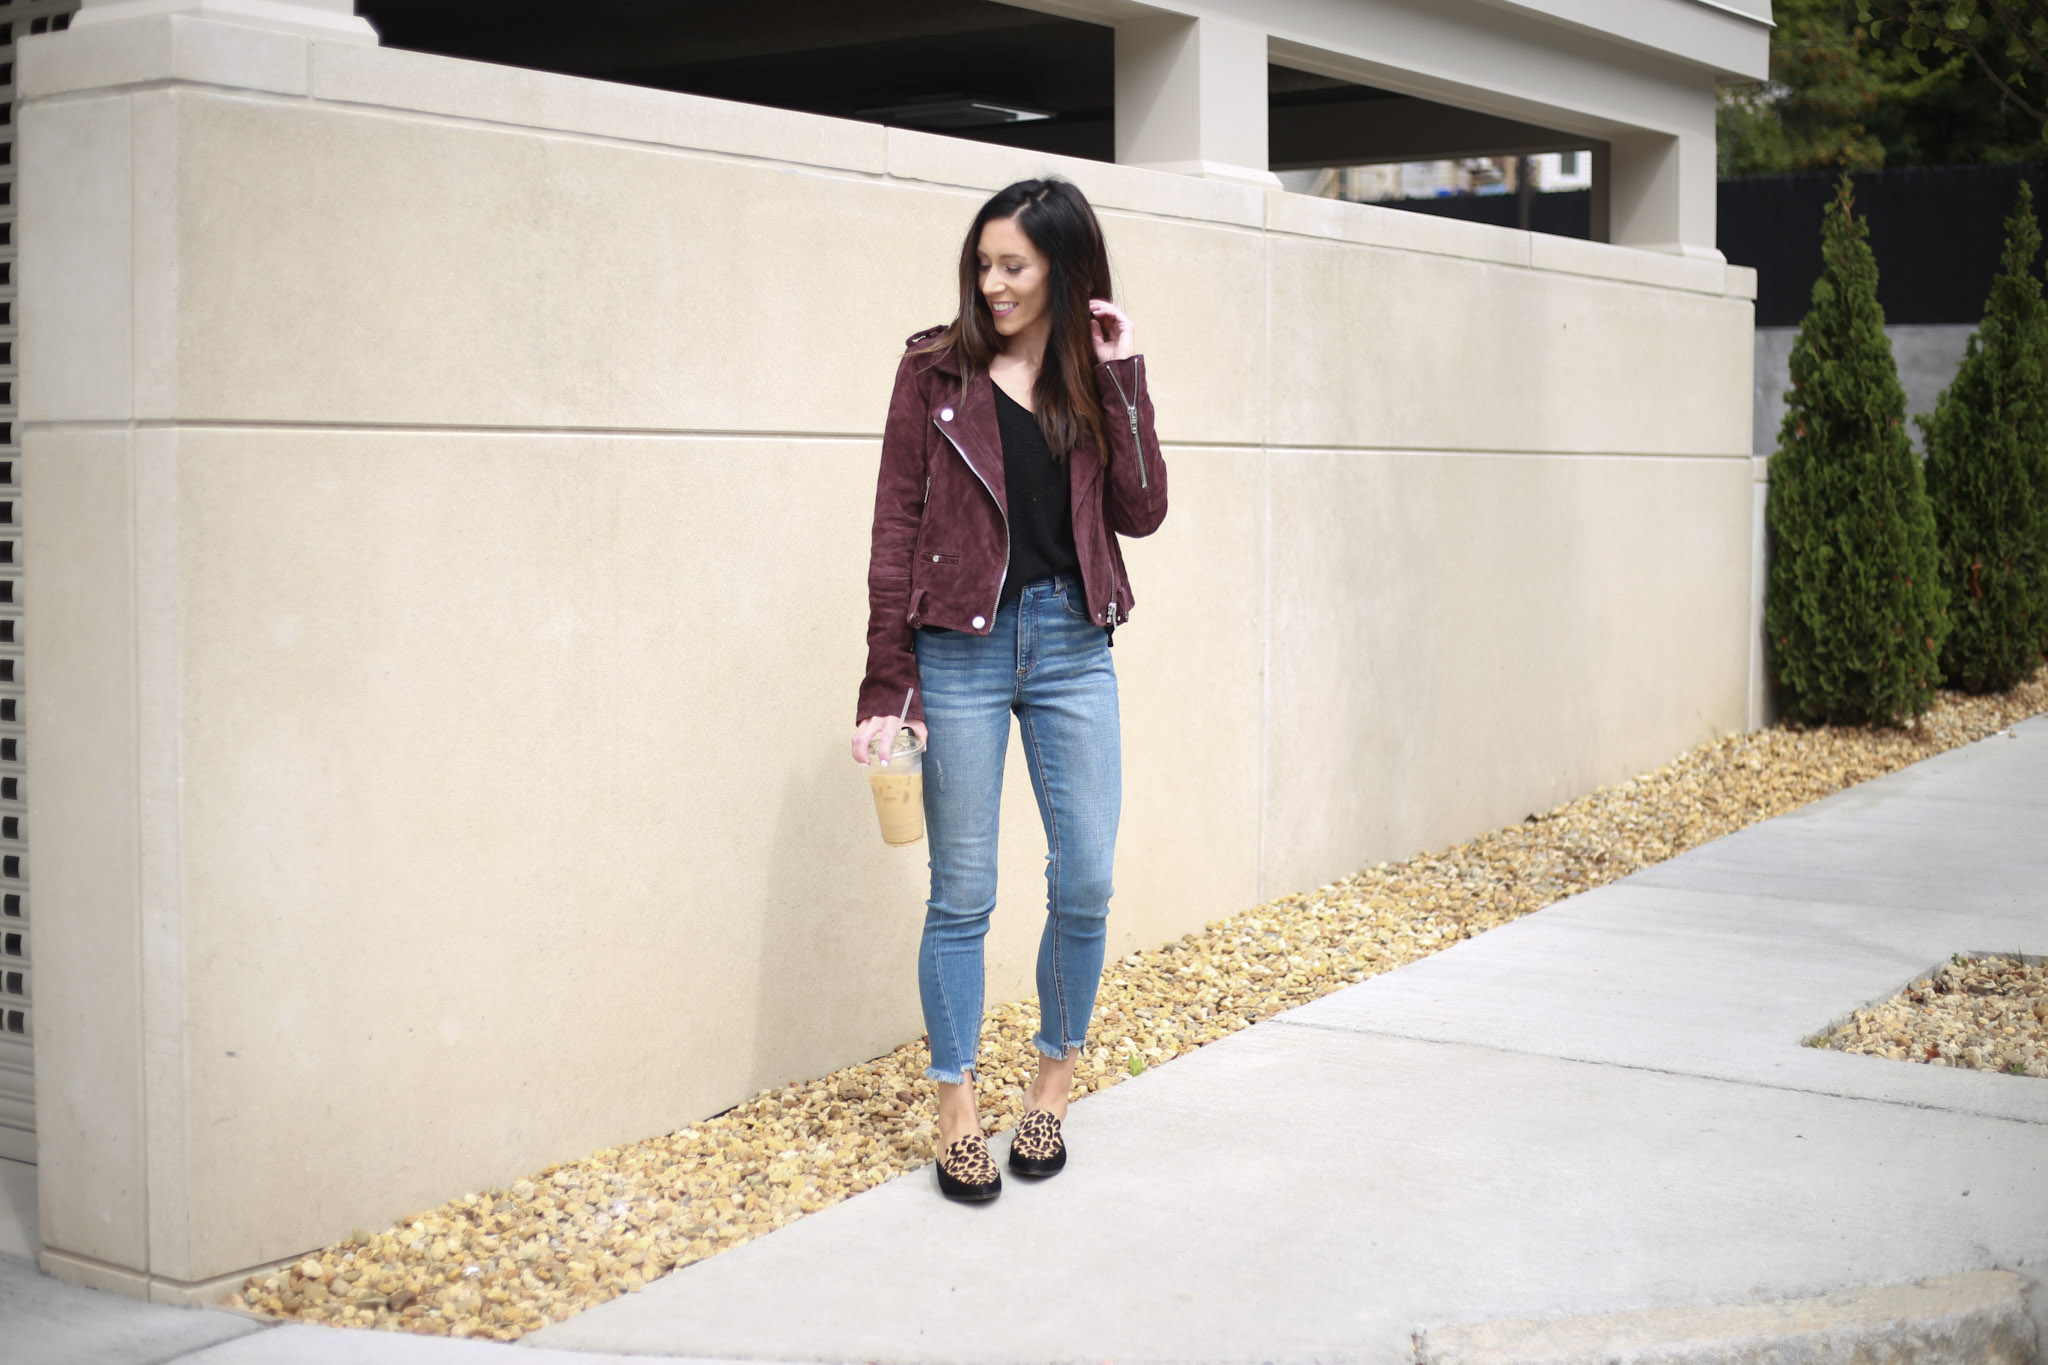 Why you need a moto jacket in your capsule wardrobe - Capsule Wardrobe Series: Moto Jacket by Boston fashion blogger Living Life Pretty